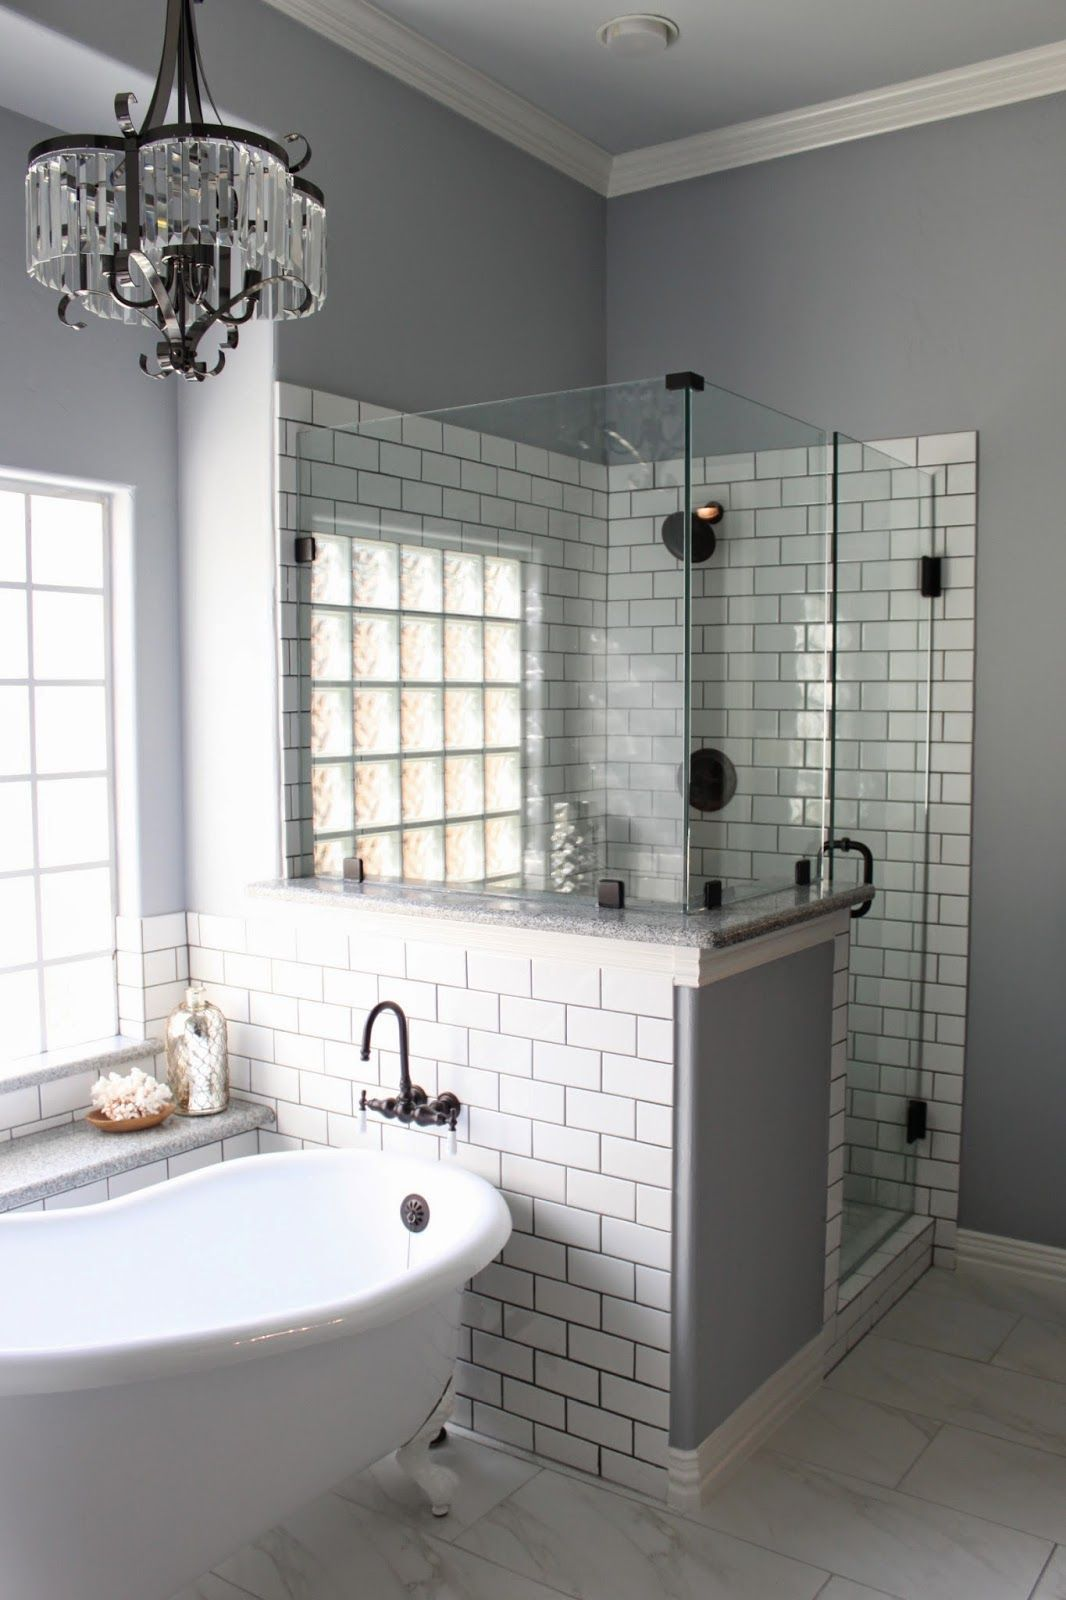 10+ Beautiful Half Bathroom Ideas for Your Home | Grey grout, White ...